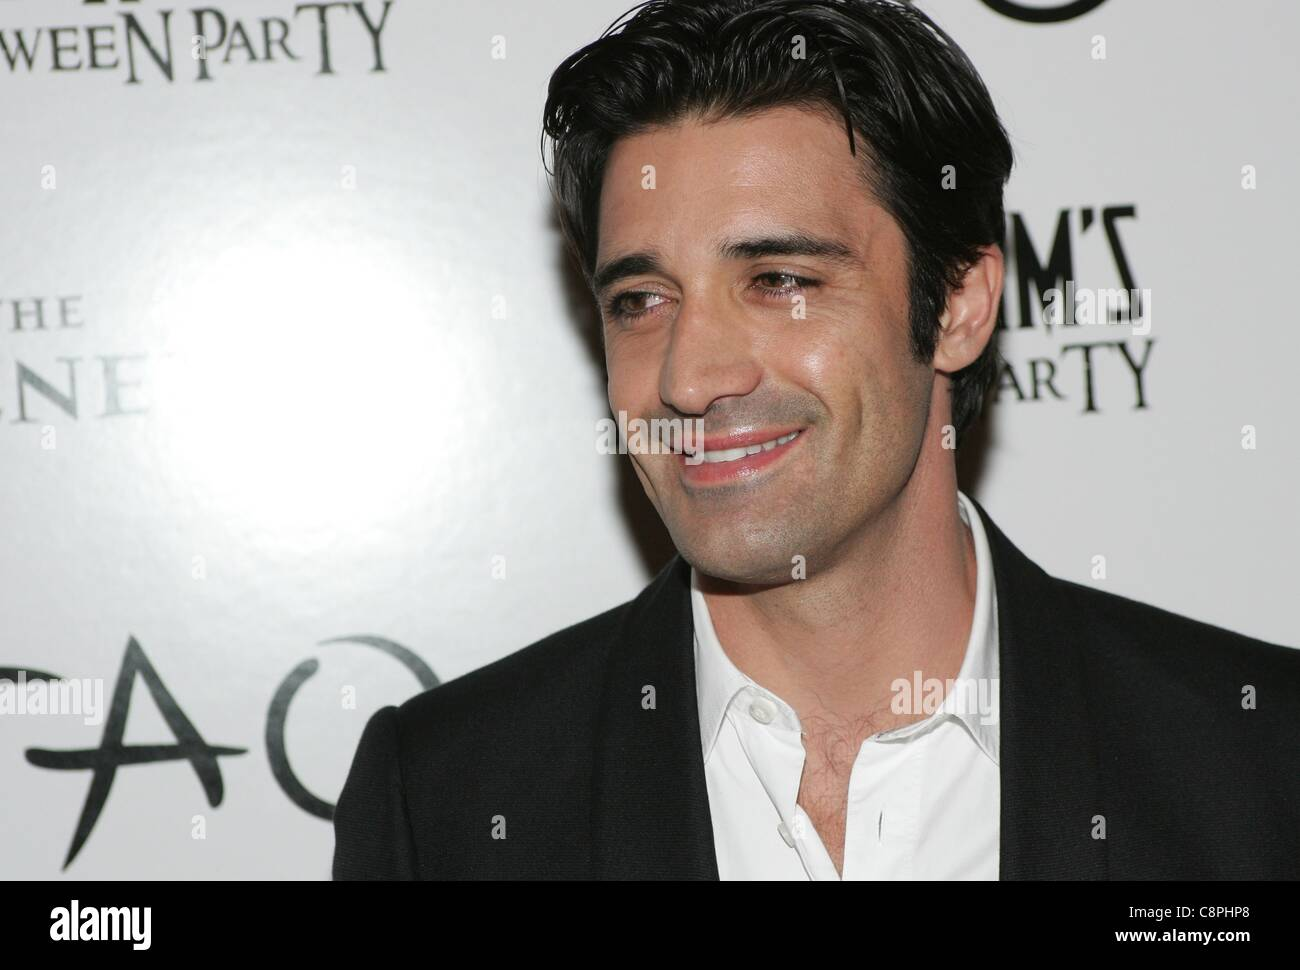 Gilles Marini in attendance for Heid Klum Halloween Party at TAO ...